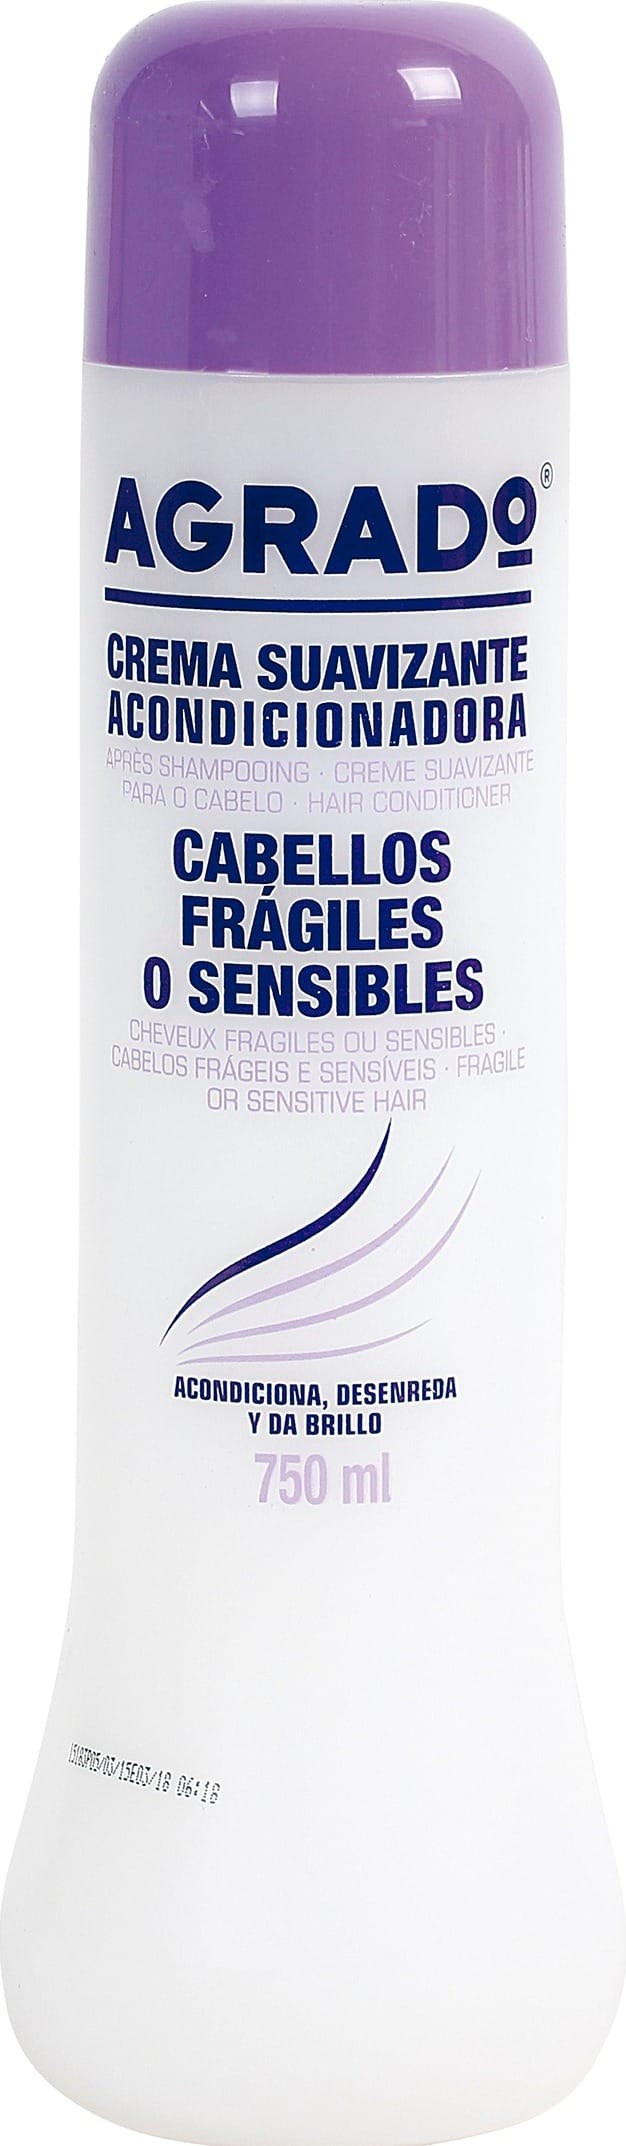 Acondicionador Agrado Fragiles o Sensibles 750ml